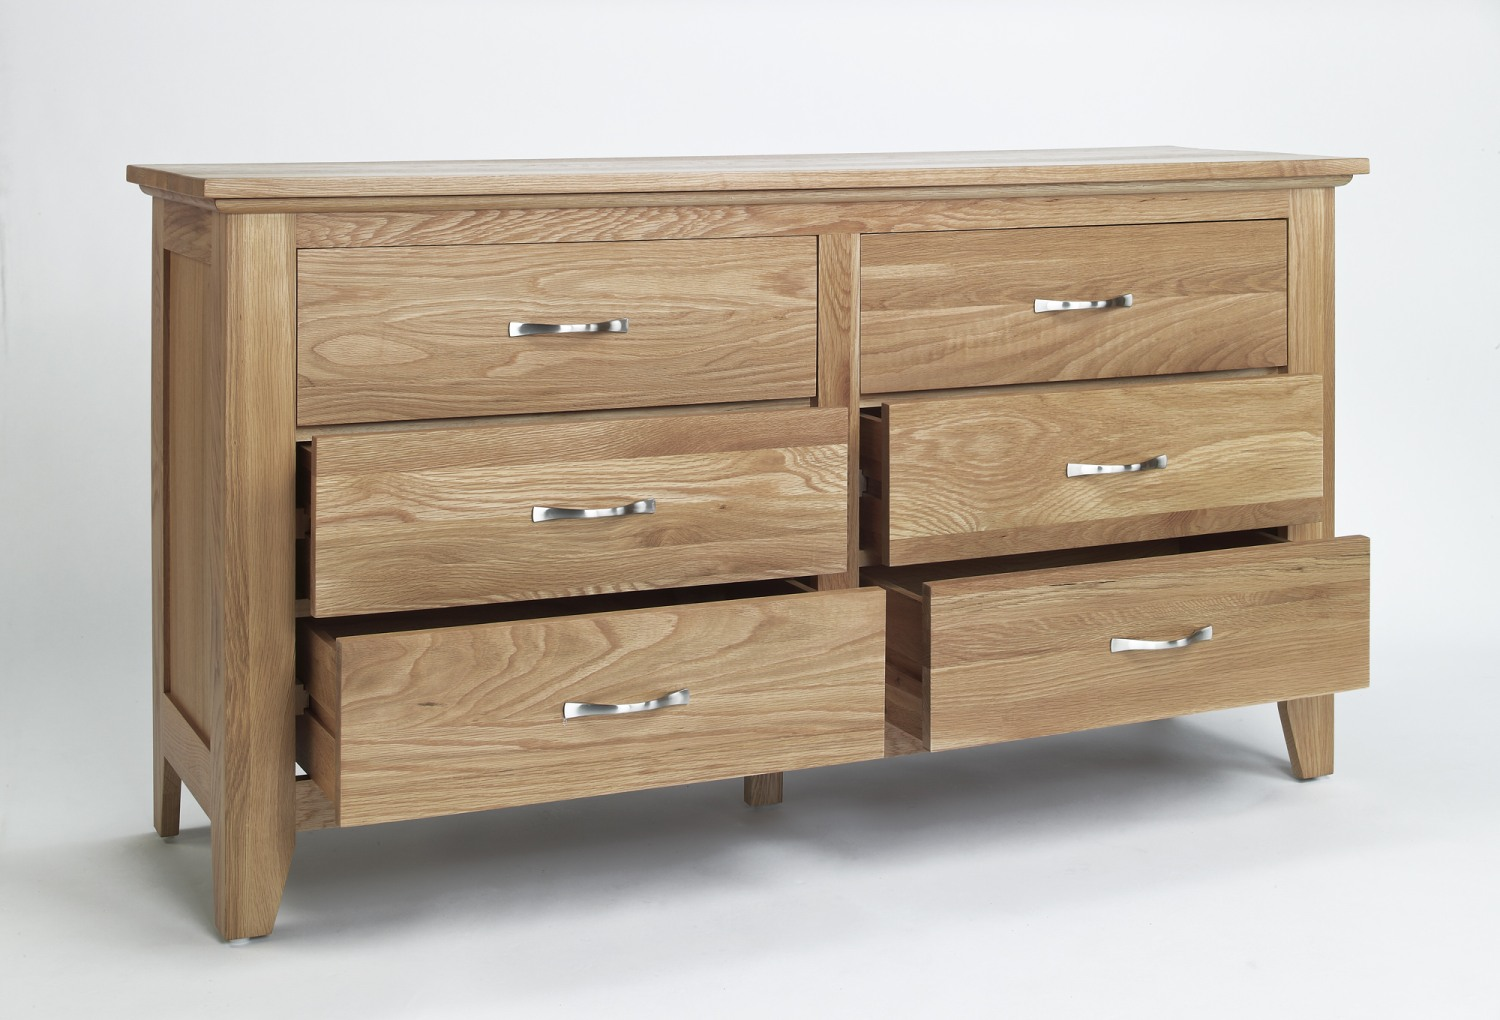 Compton solid oak furniture low bedroom chest of drawers for Bedroom furniture chest of drawers